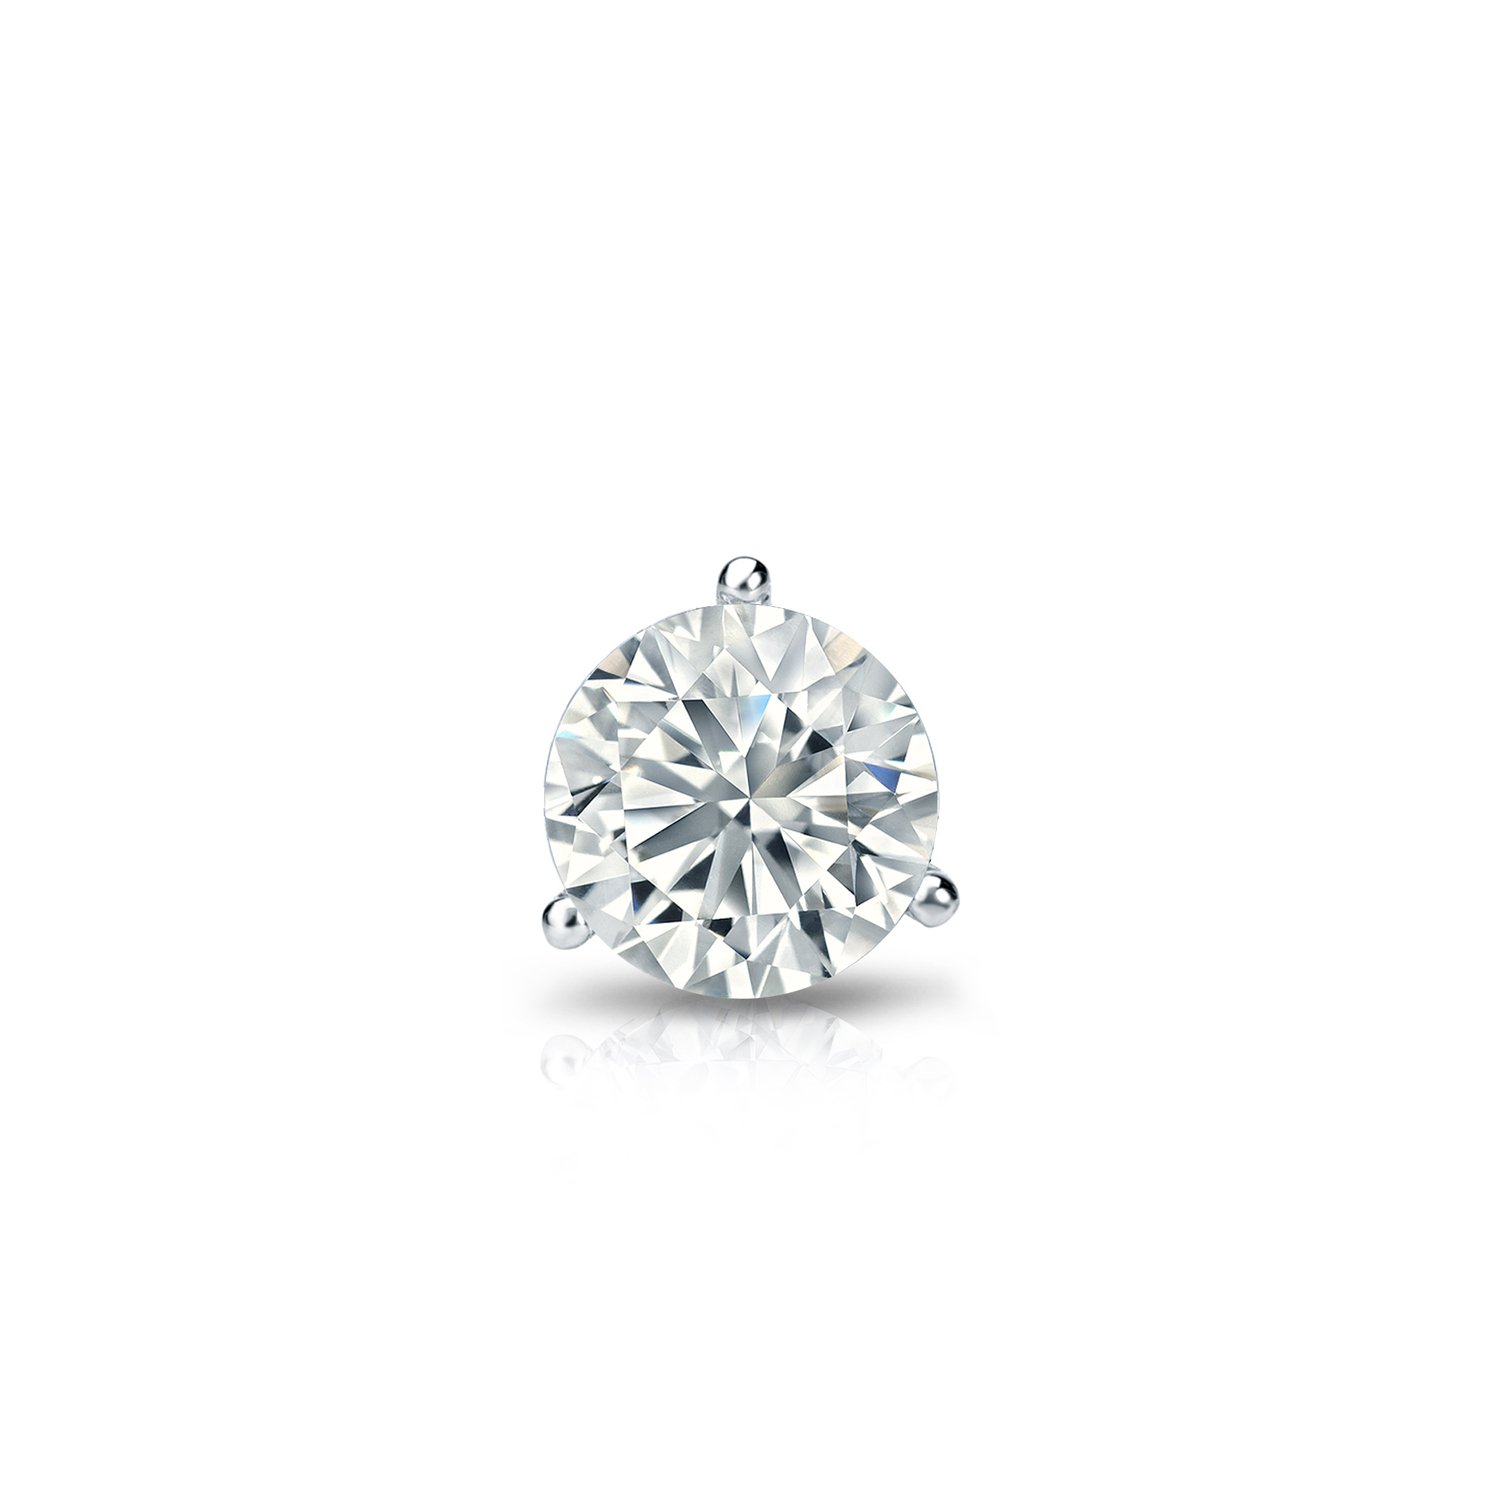 14k White Gold Round Diamond Simulant CZ SINGLE STUD Earring 3-Prong(1/3cttw,Excellent Quality)